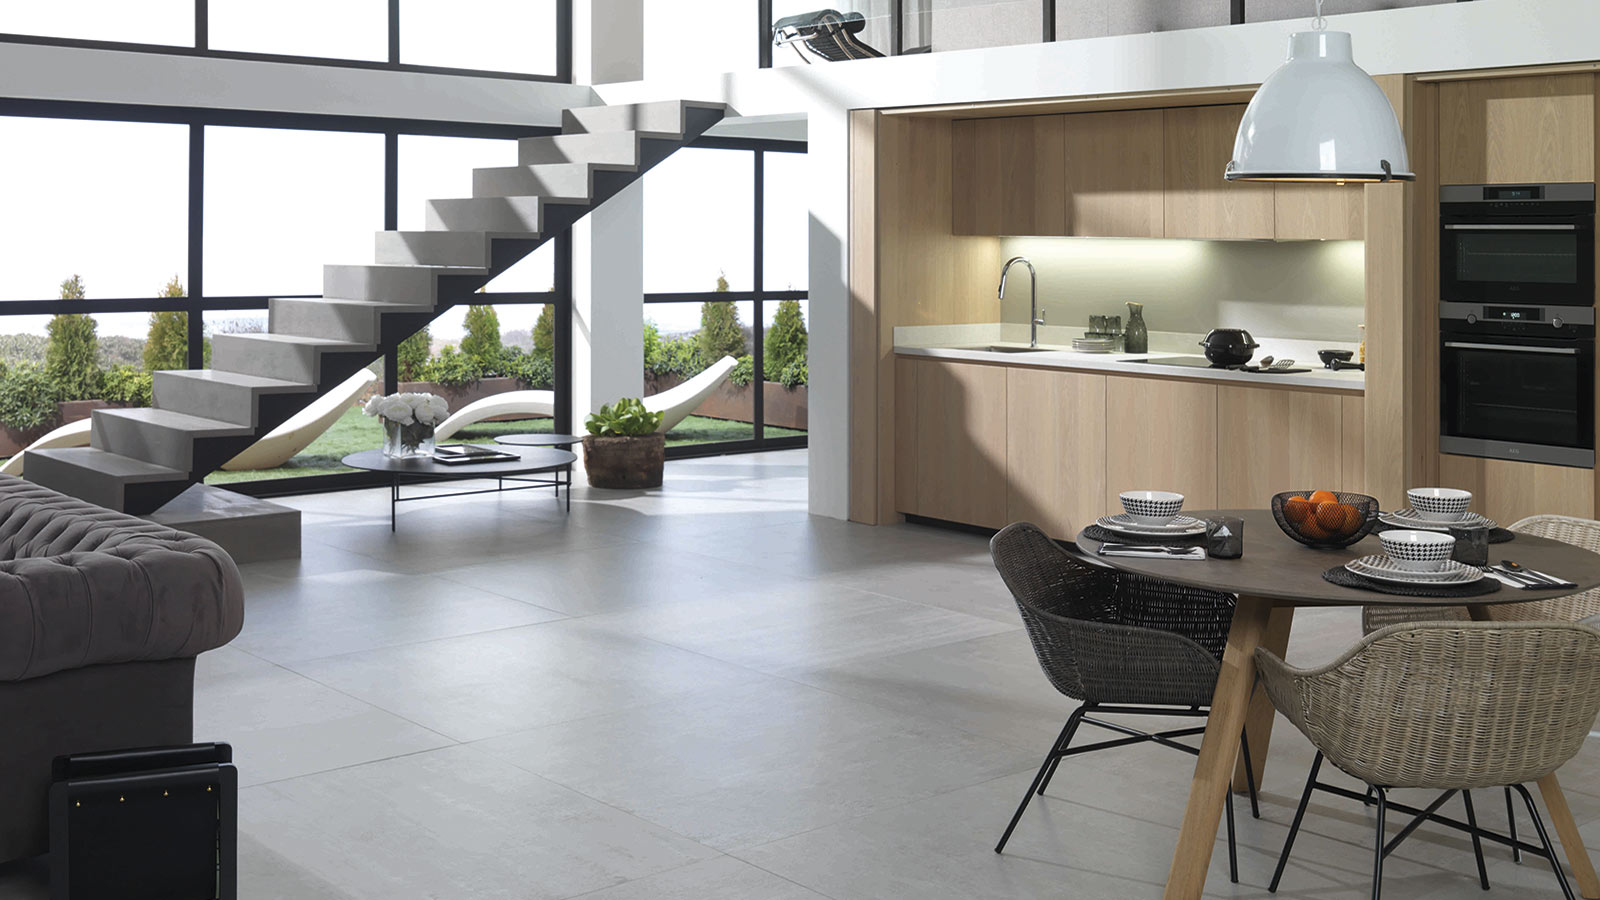 Gamadecor presents a chameleonic design in its Emotions 6.90 Roble Alba kitchen